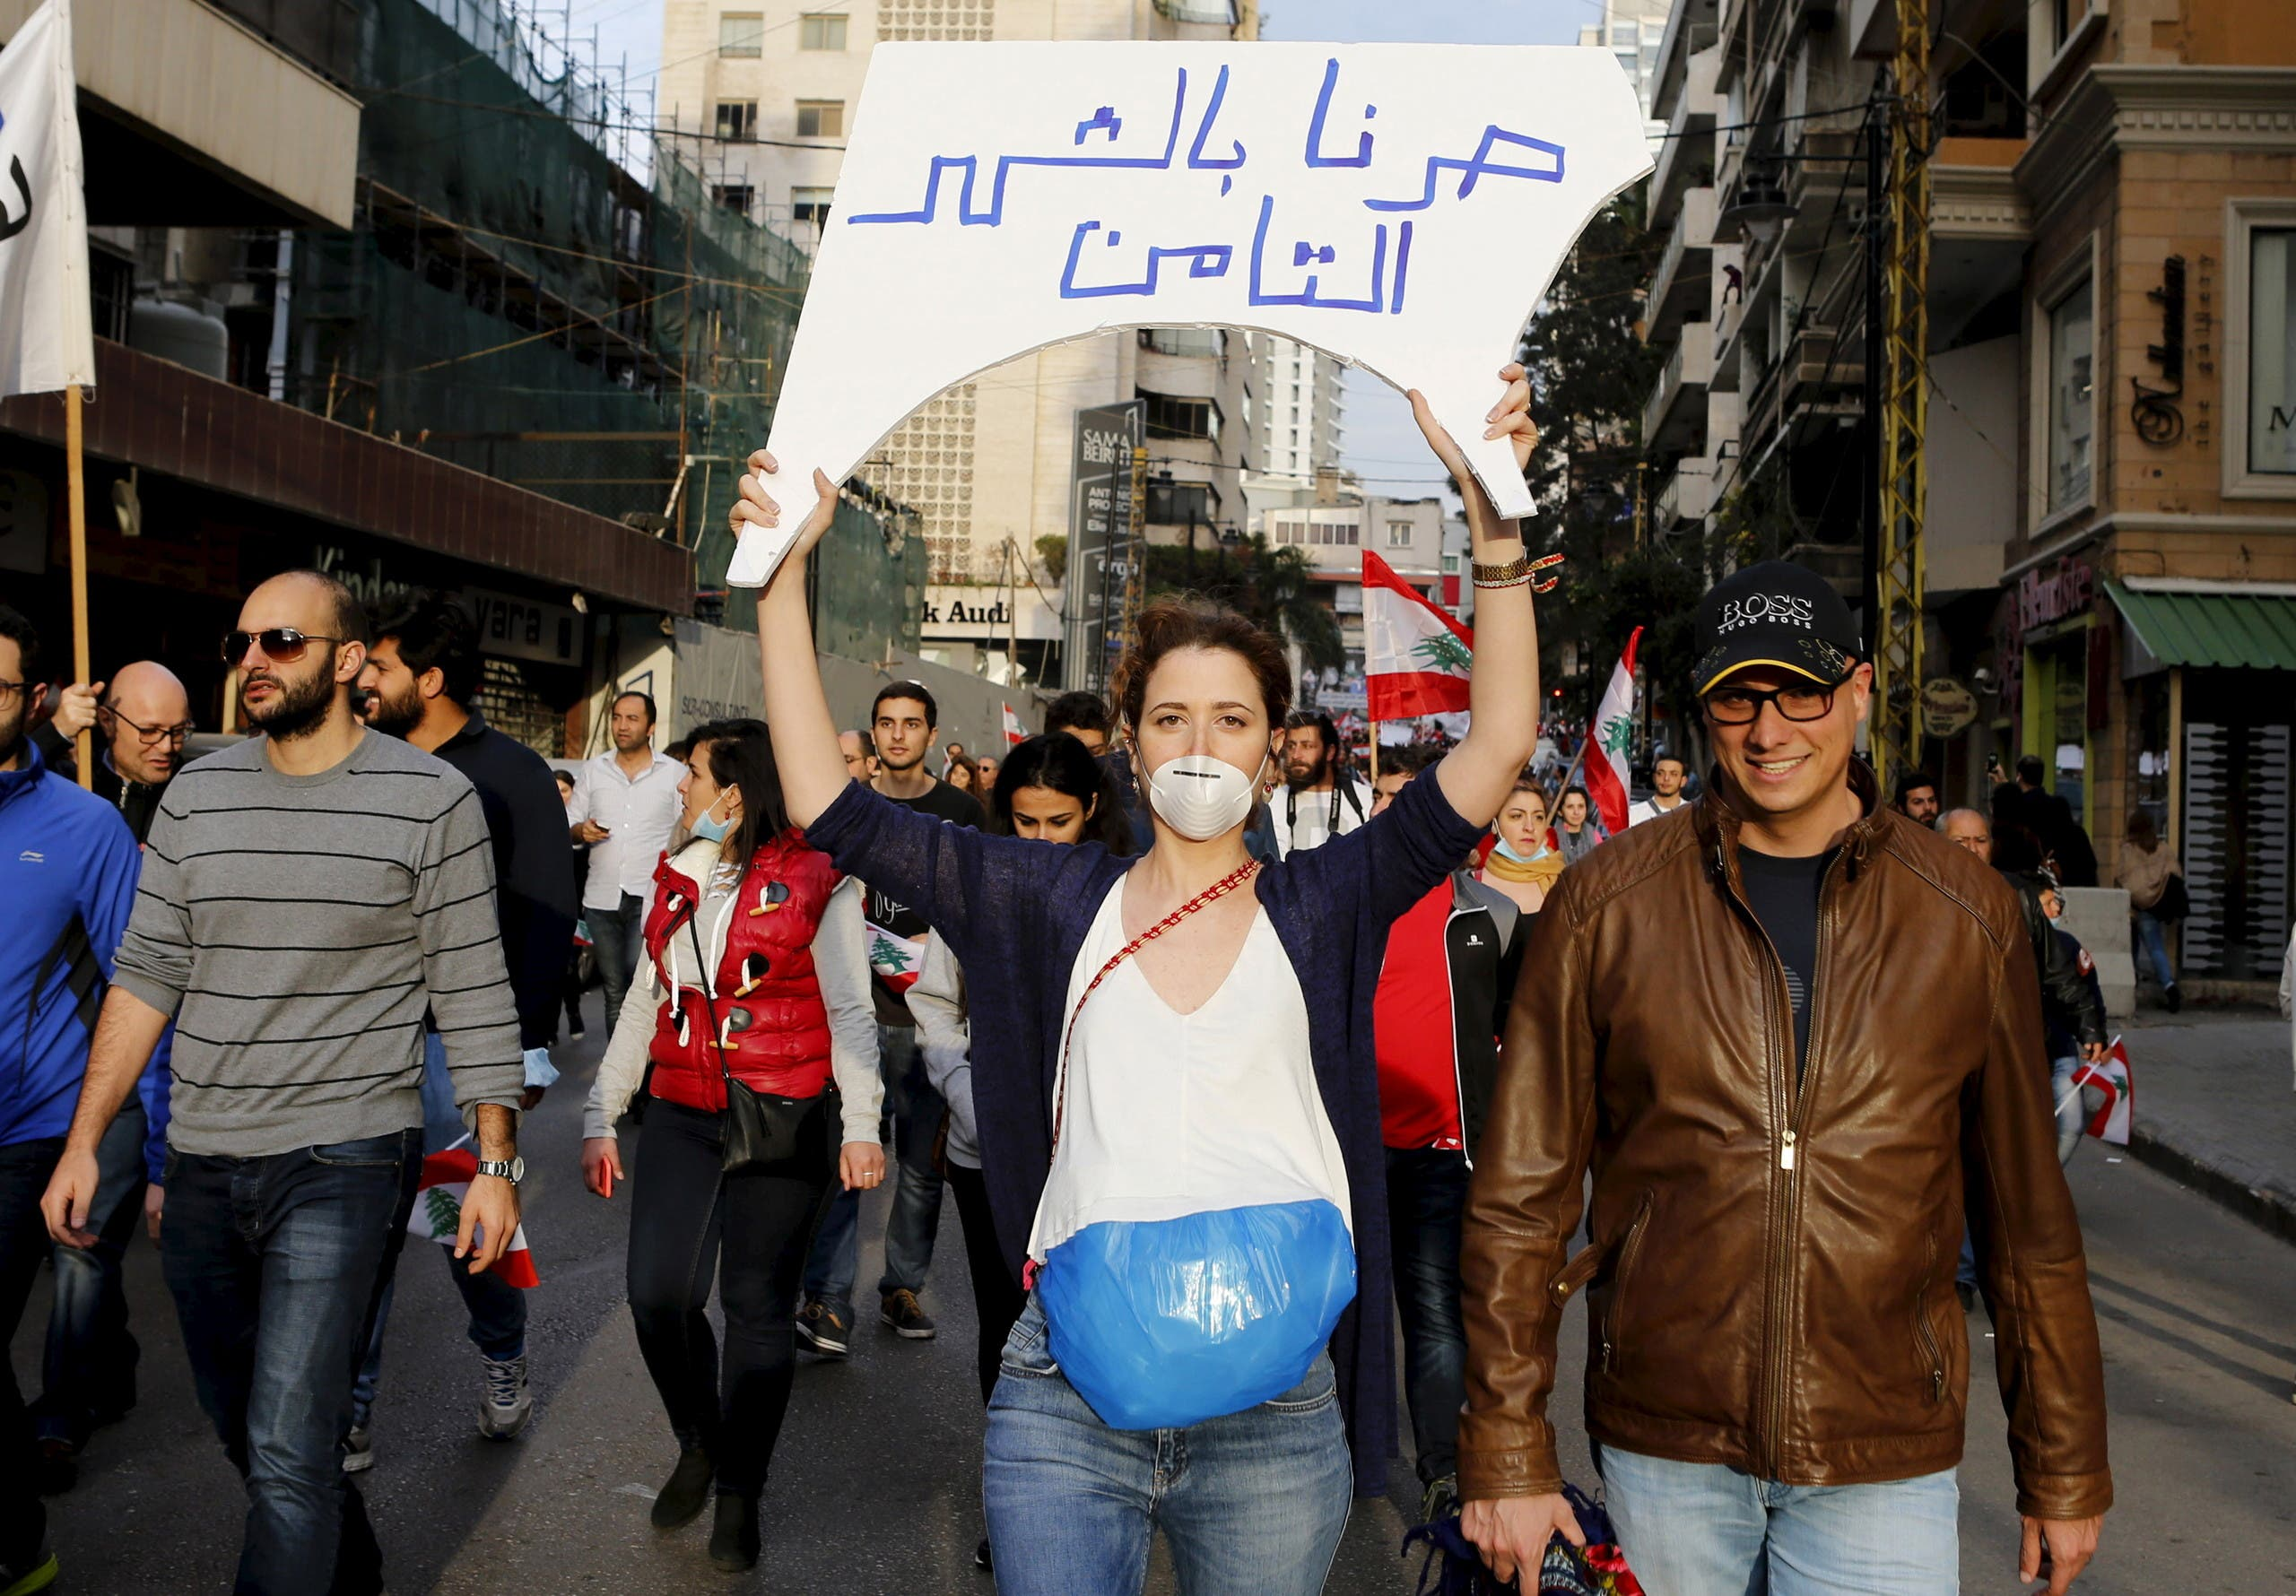 A protester, wearing a garbage bag and holding up a sign, takes part in a protest against what demonstrators say is the government's failure to resolve a crisis over rubbish disposal in Beirut, Lebanon March 12, 2016. (Reuters)